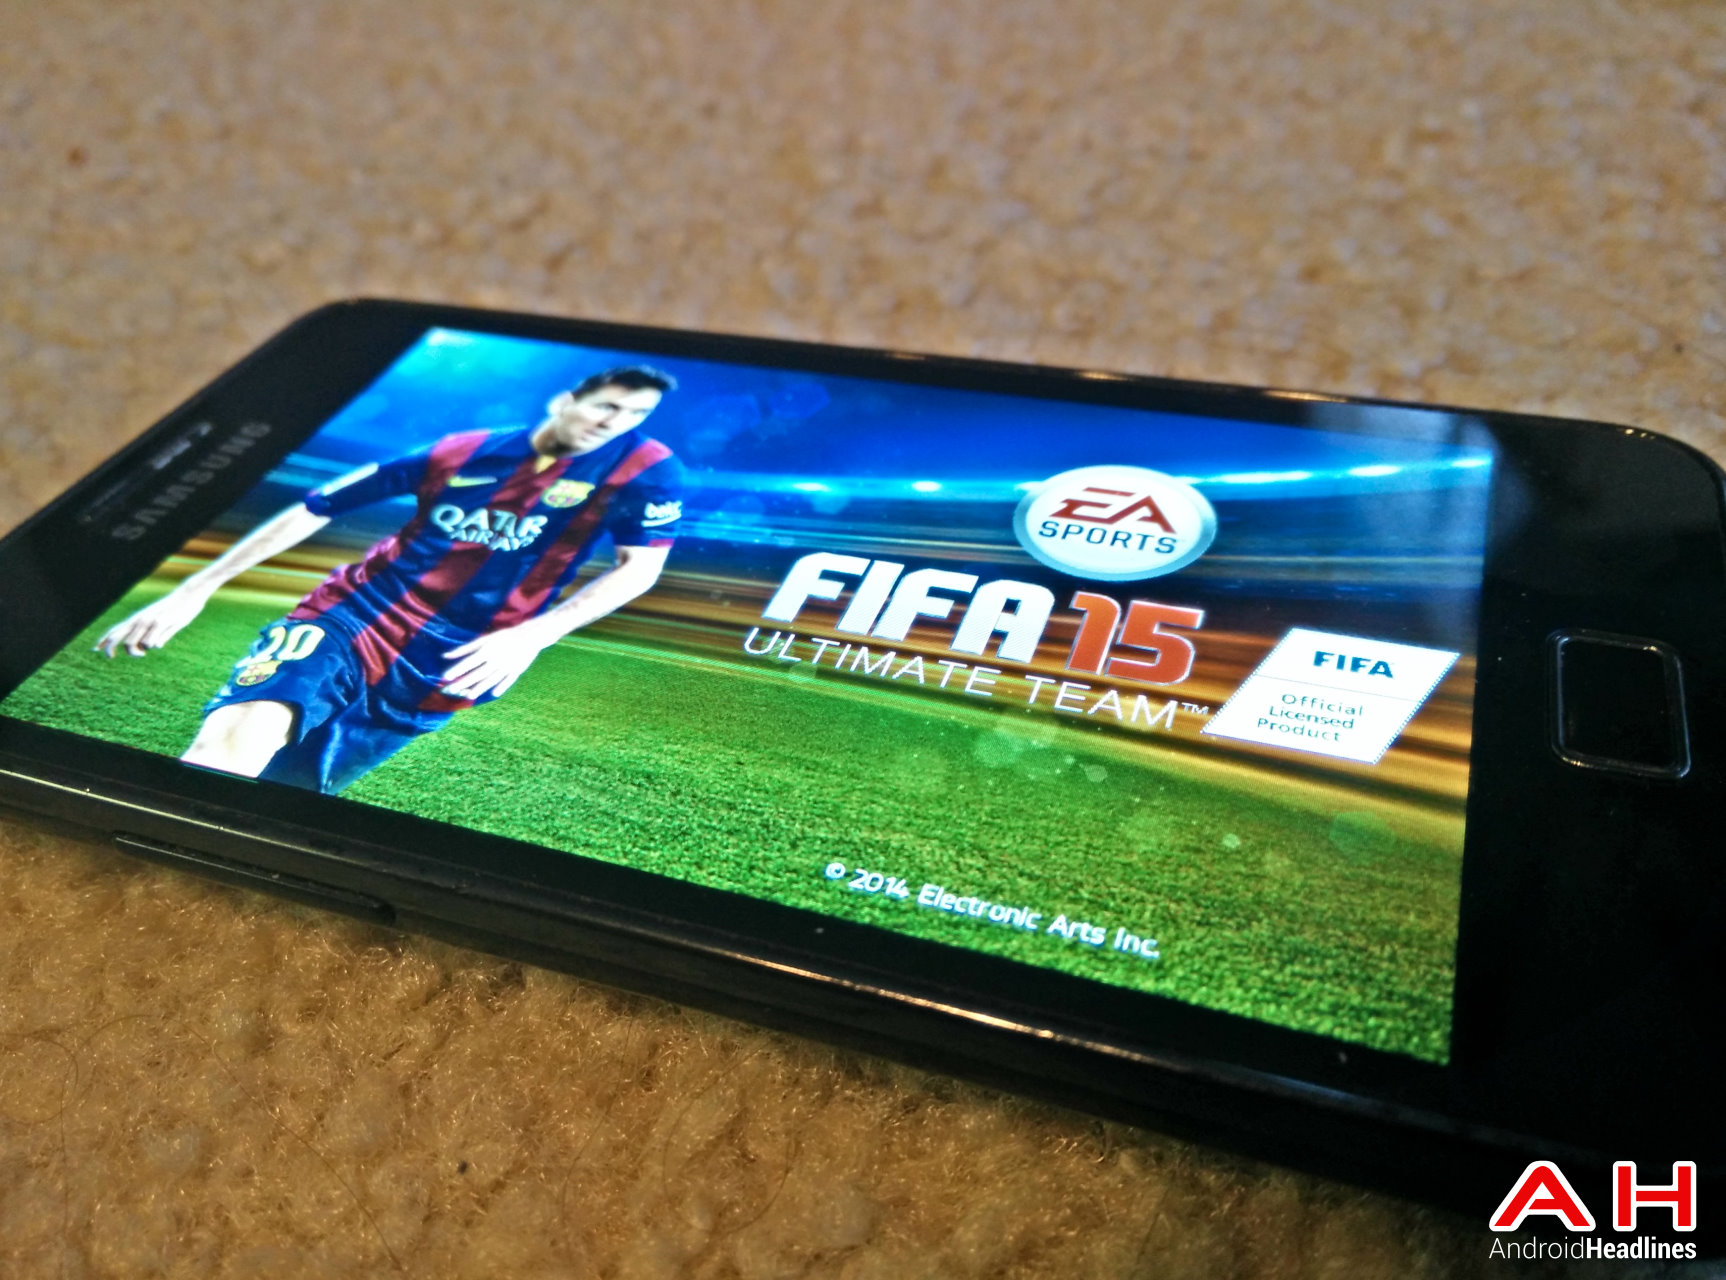 Download best football or soccer games for android in 2014 - No Matter Where You Live Chances Are Soccer Football Is A Big Deal This Year In Particular Was A Great Year For Soccer Thanks To The World Cup That Took